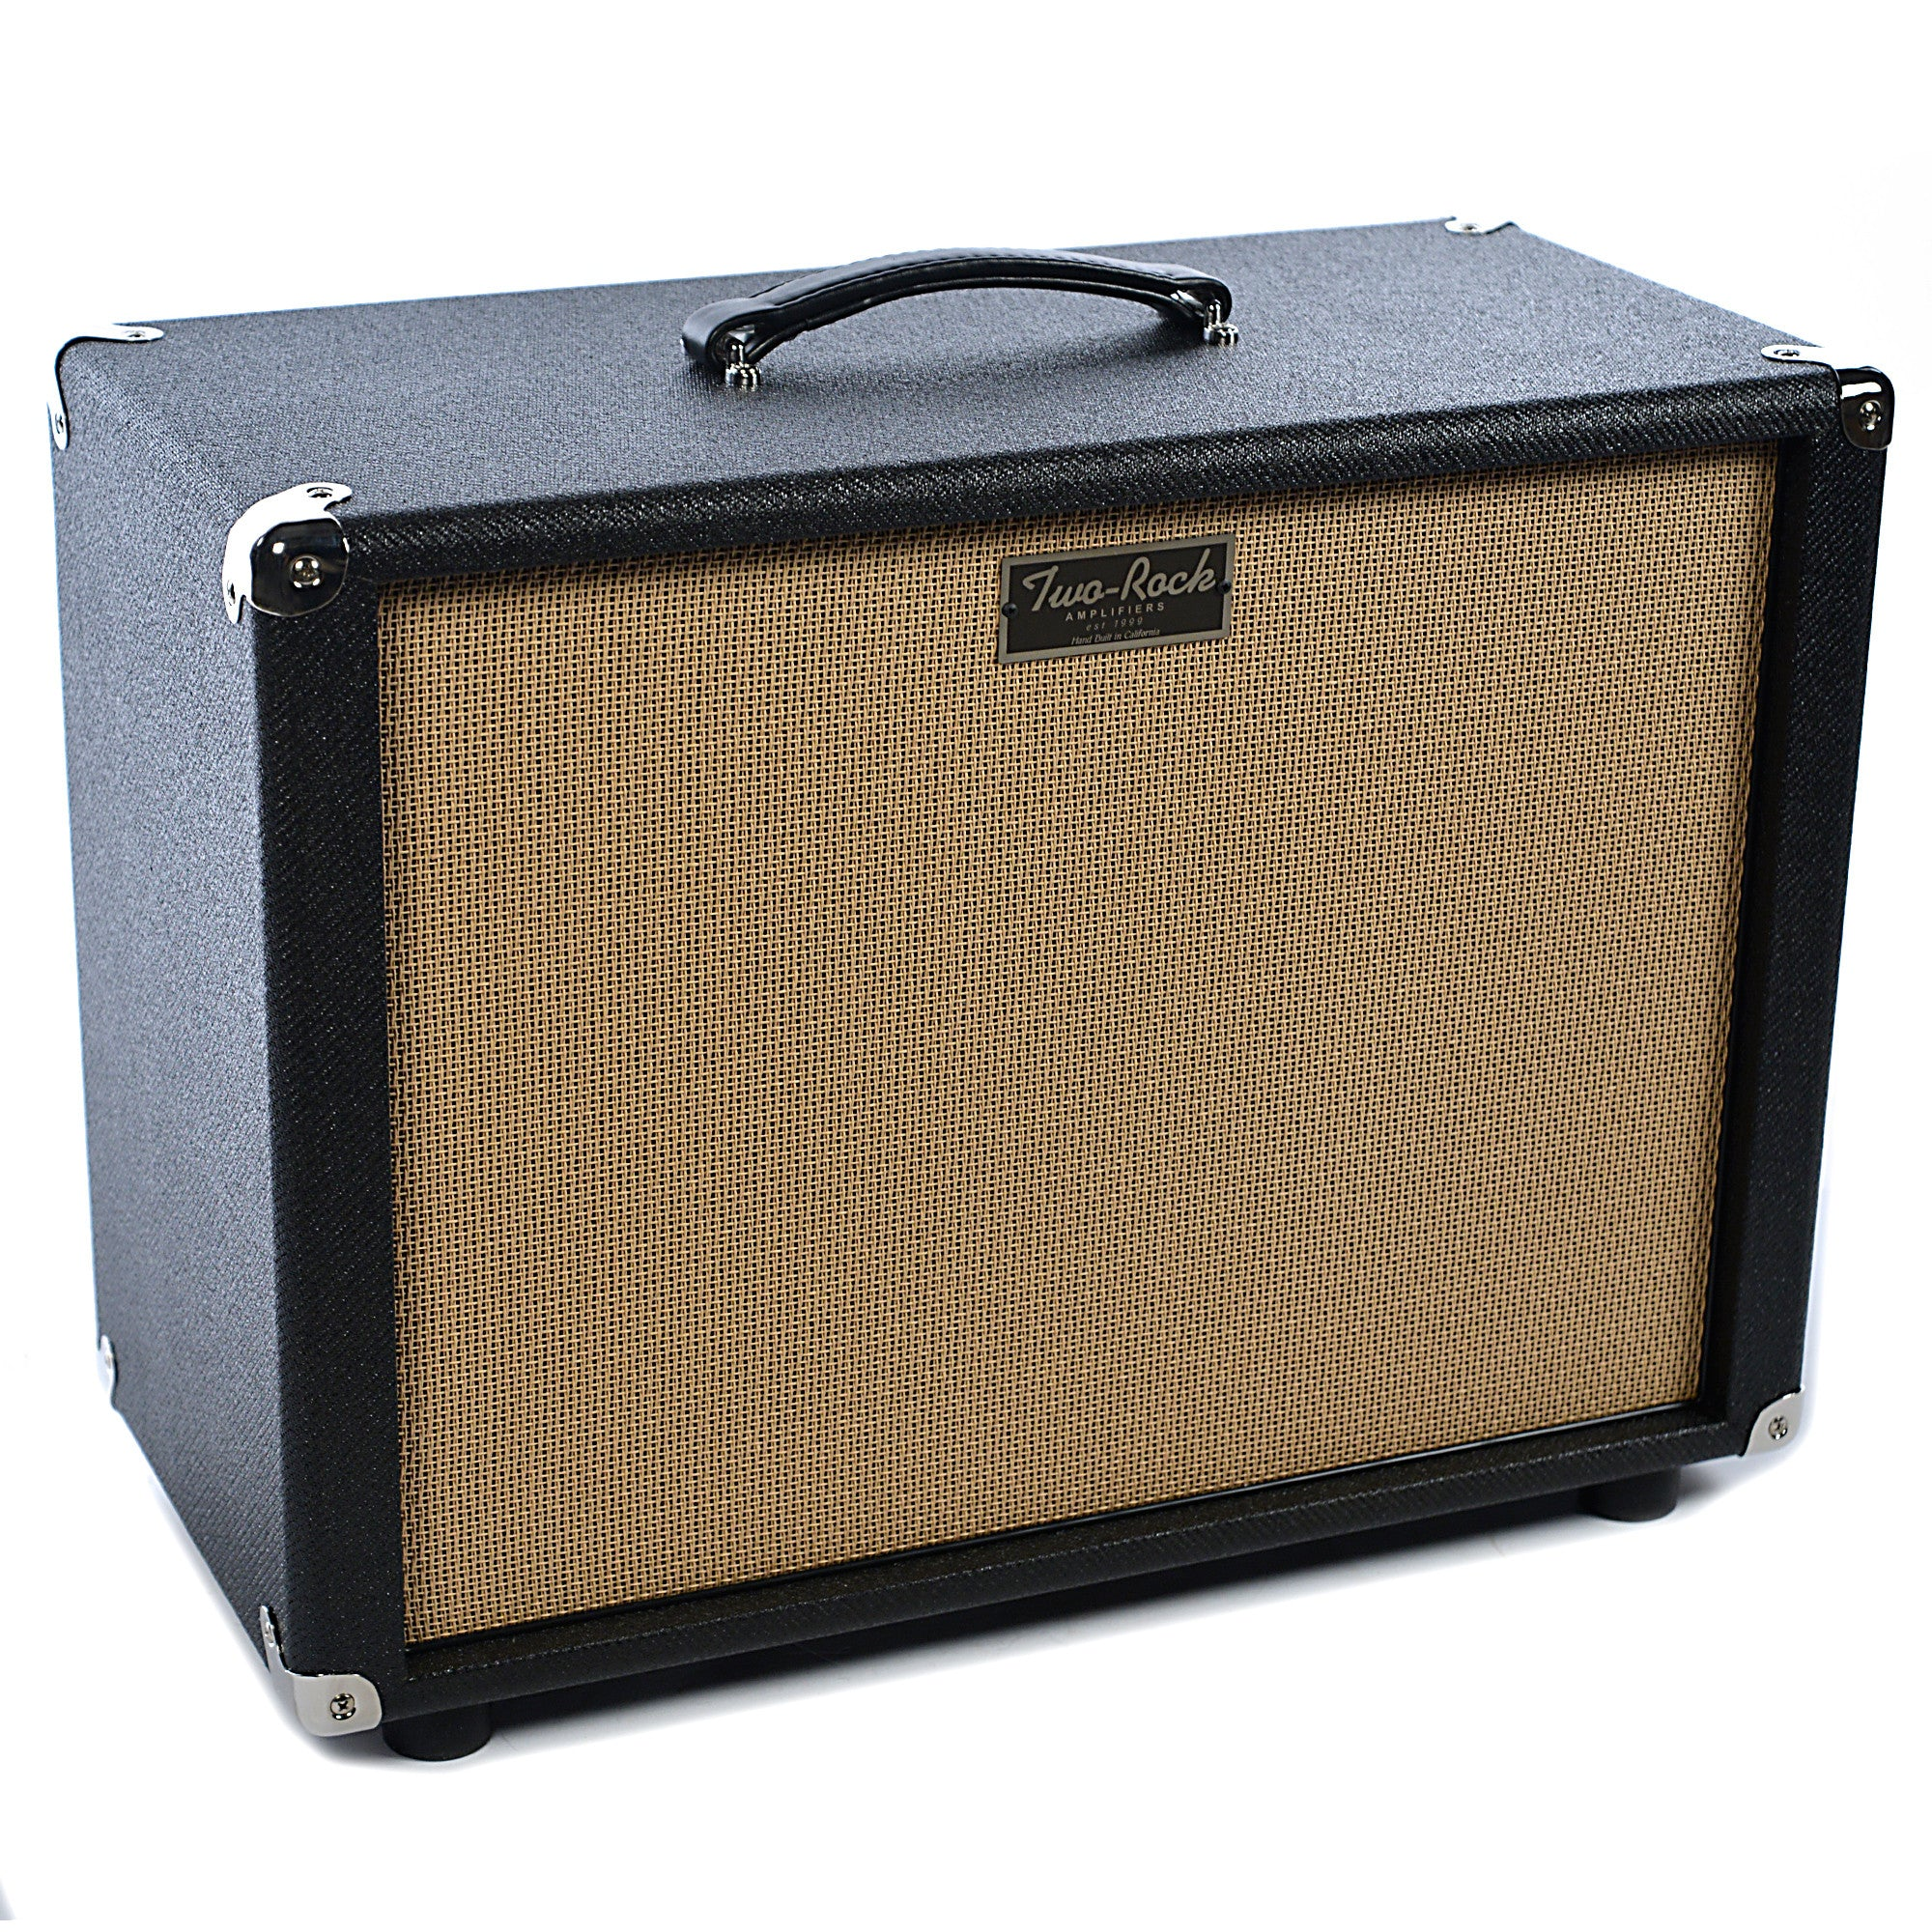 Two Rock Burnside 1x12 Cabinet | Chicago Music Exchange